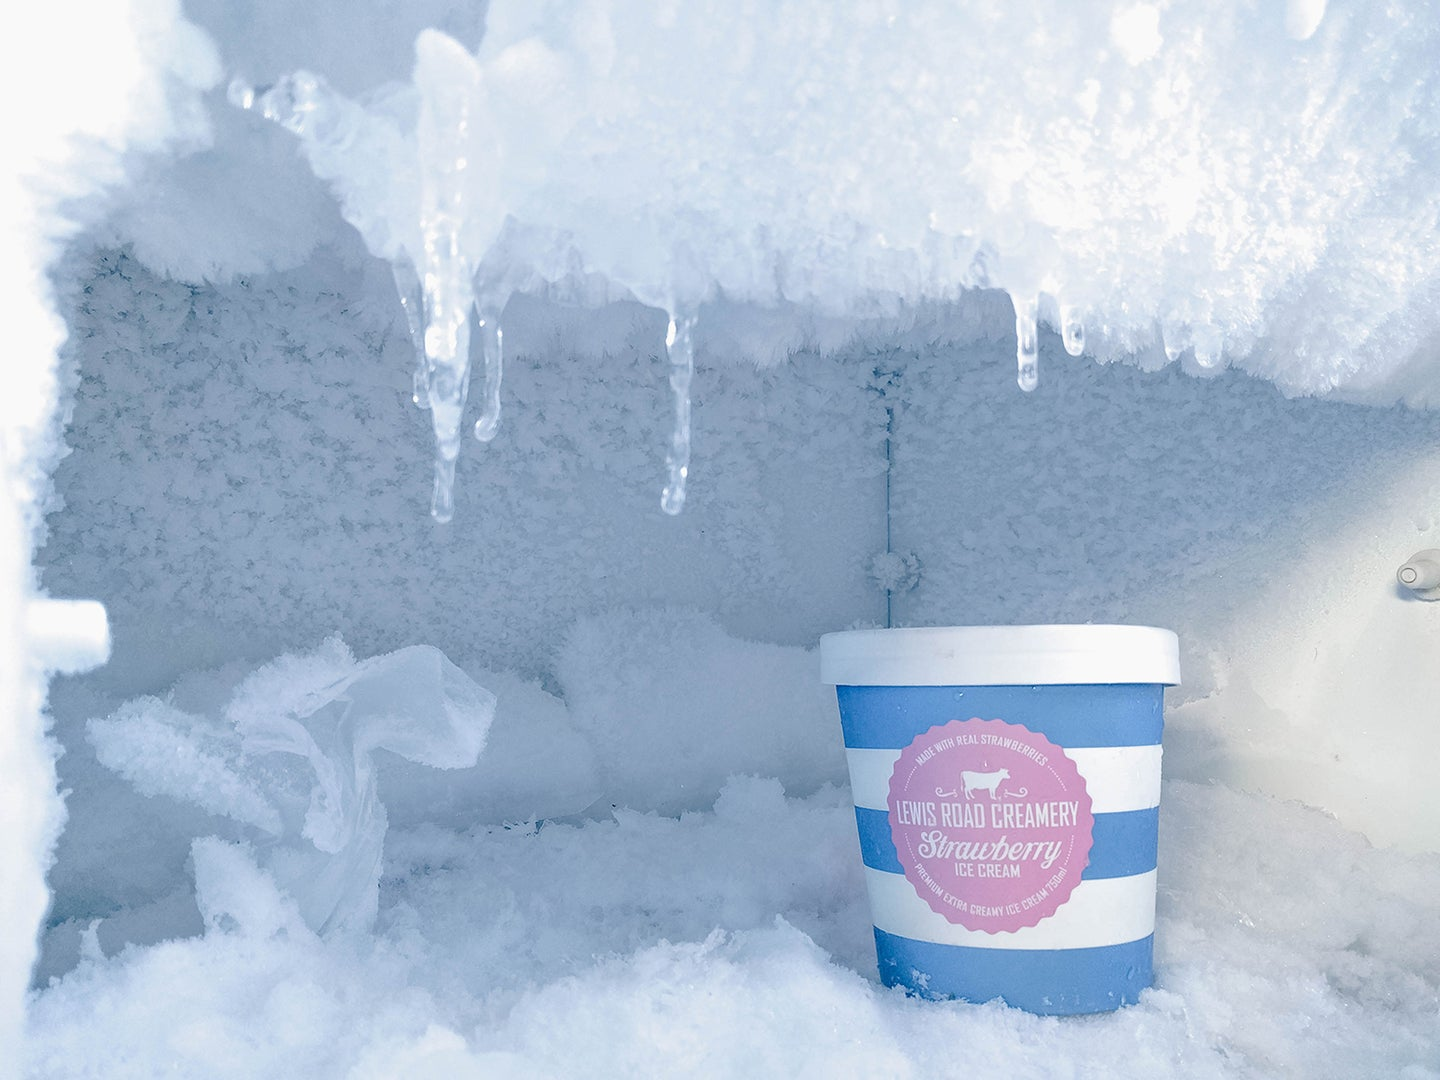 pint of ice cream in a freezer frozen over with ice